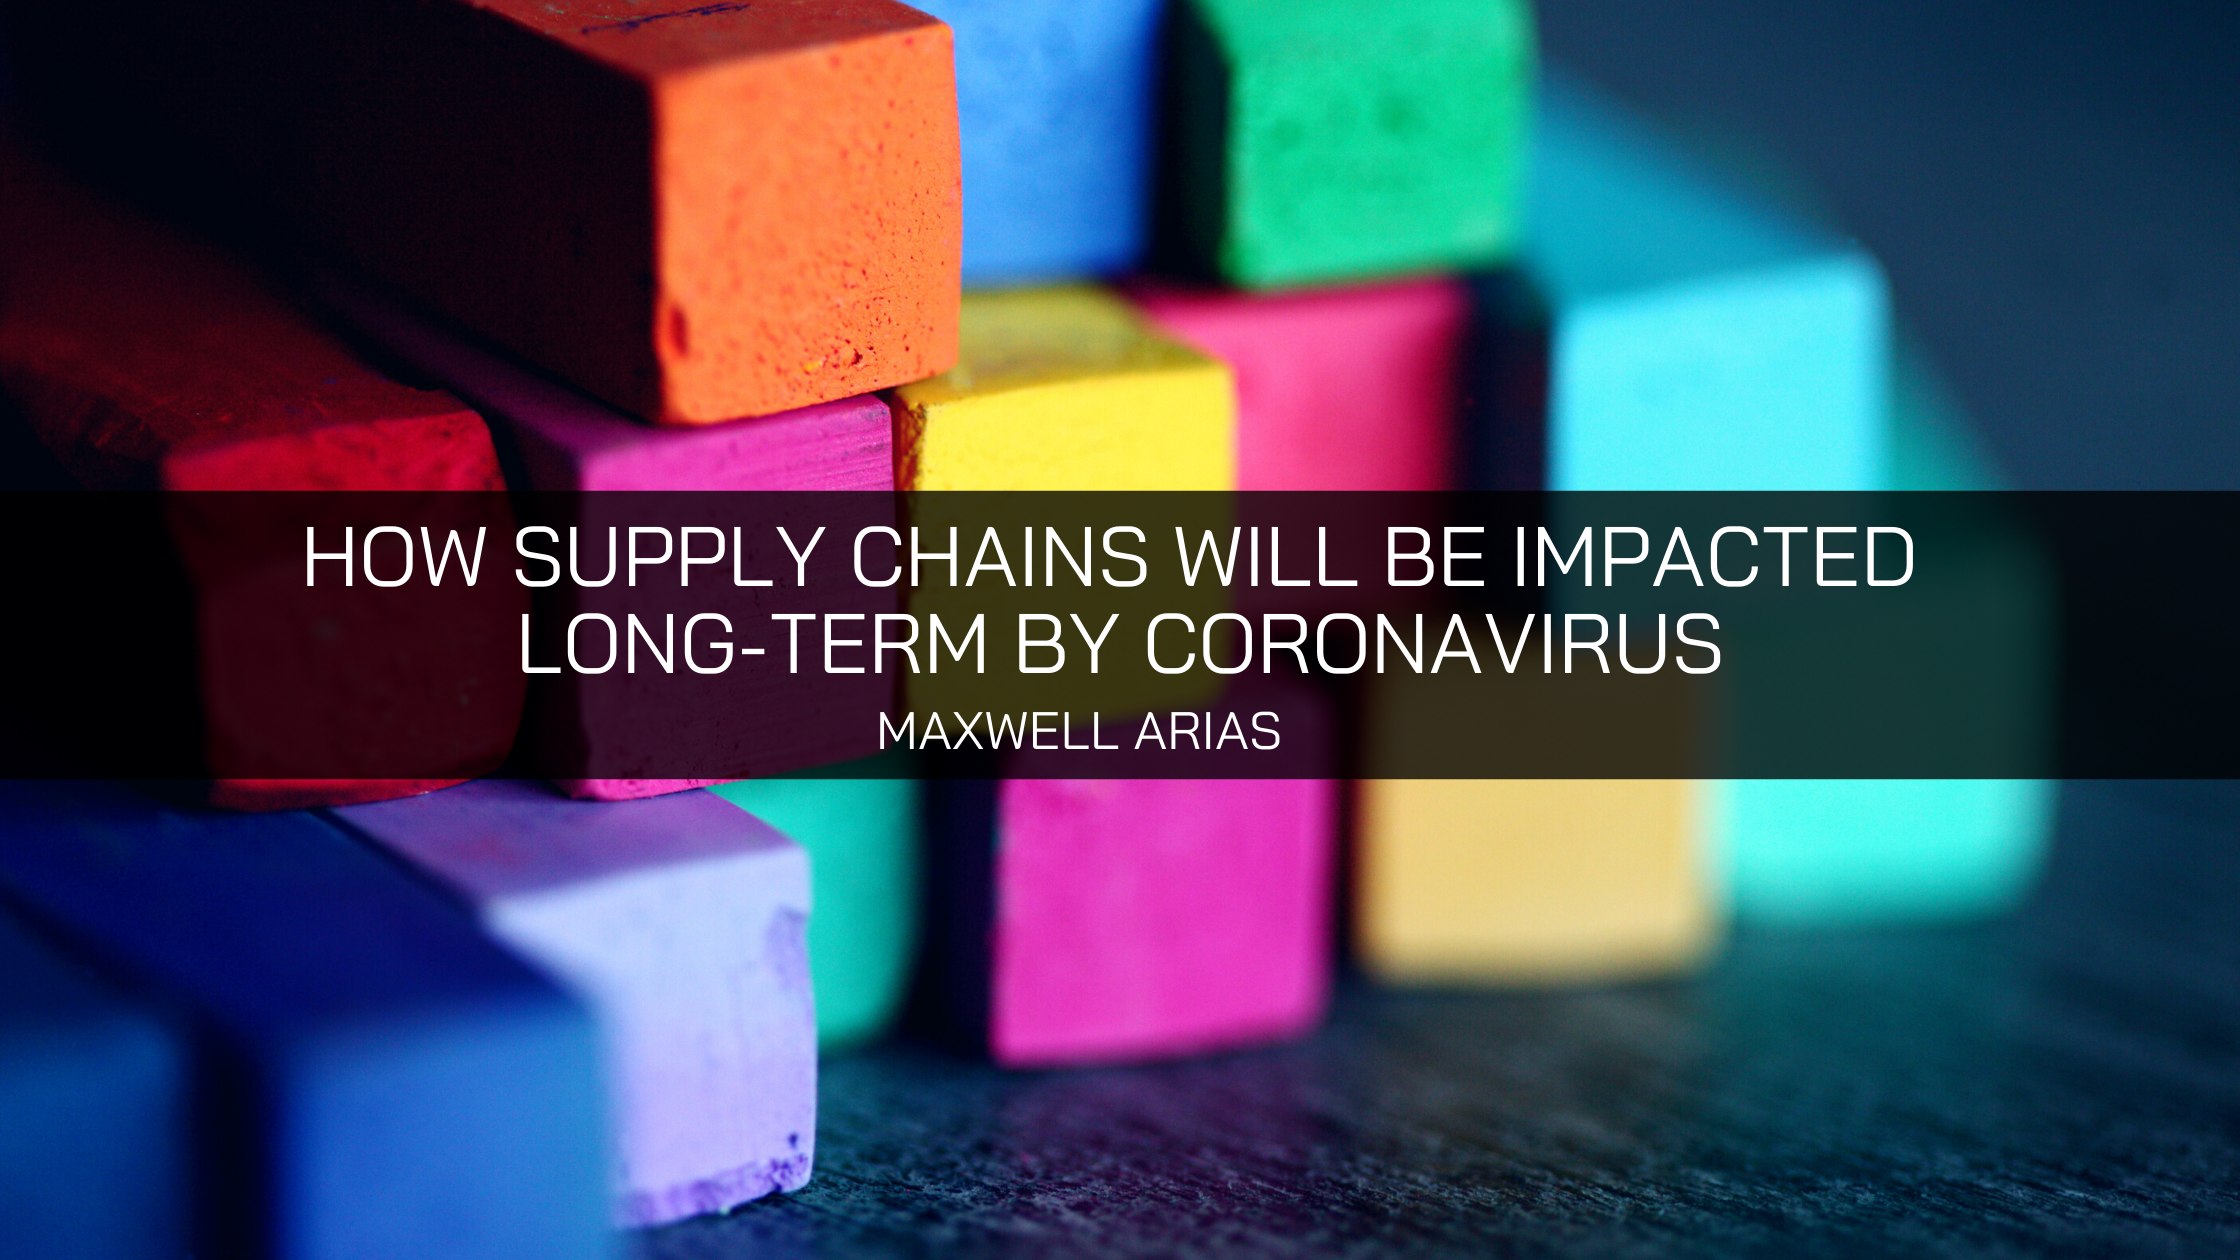 How Supply Chains Will Be Impacted Long-Term By The Coronavirus, According To Maxwell Arias